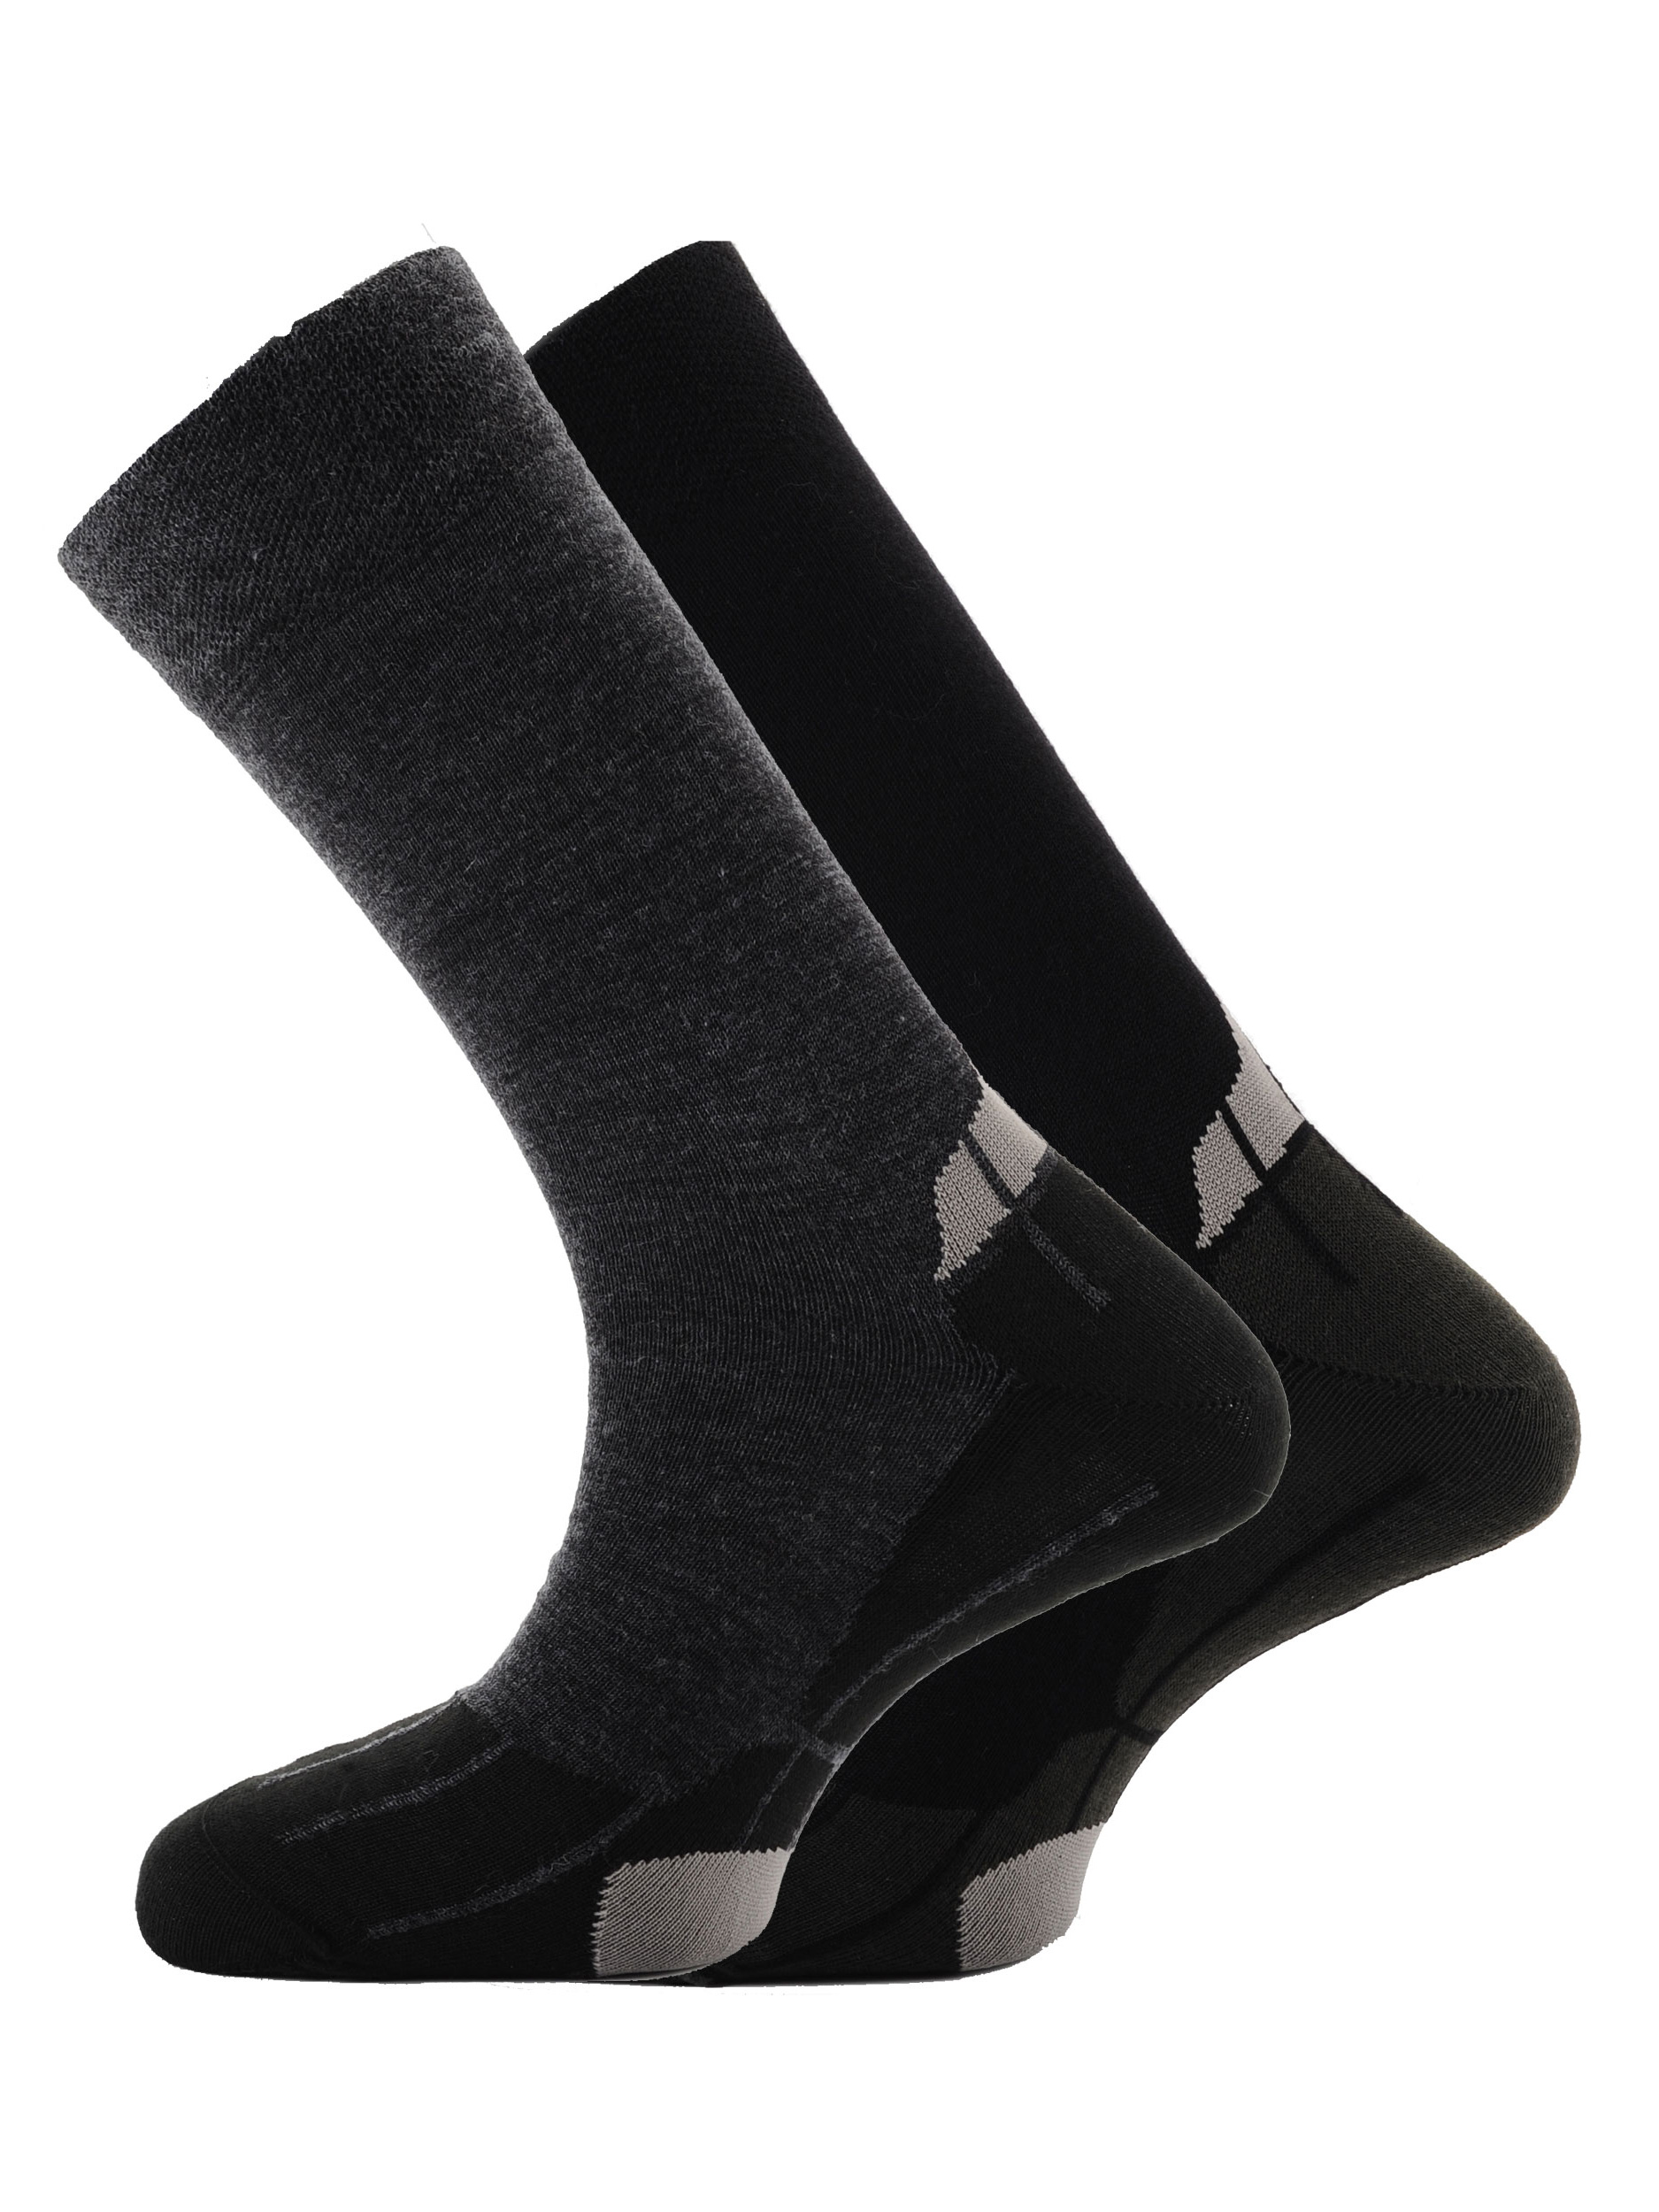 Performance Merino Lining 2pk Socks Black Charcoal